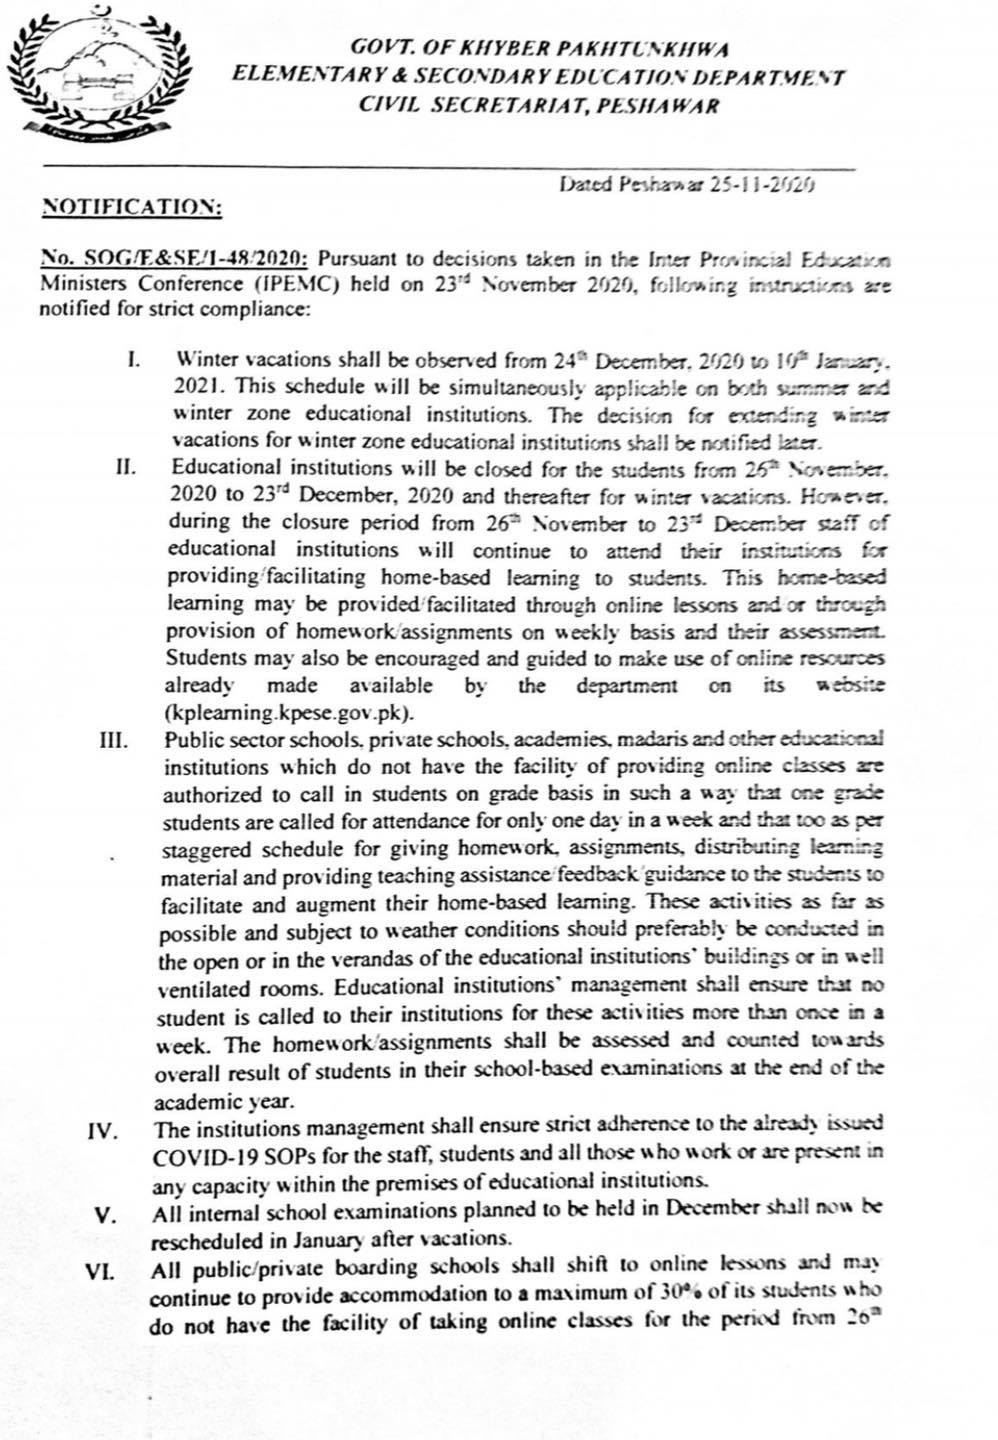 Holidays in KPK Educational Institutions wef 26th Nov 2020